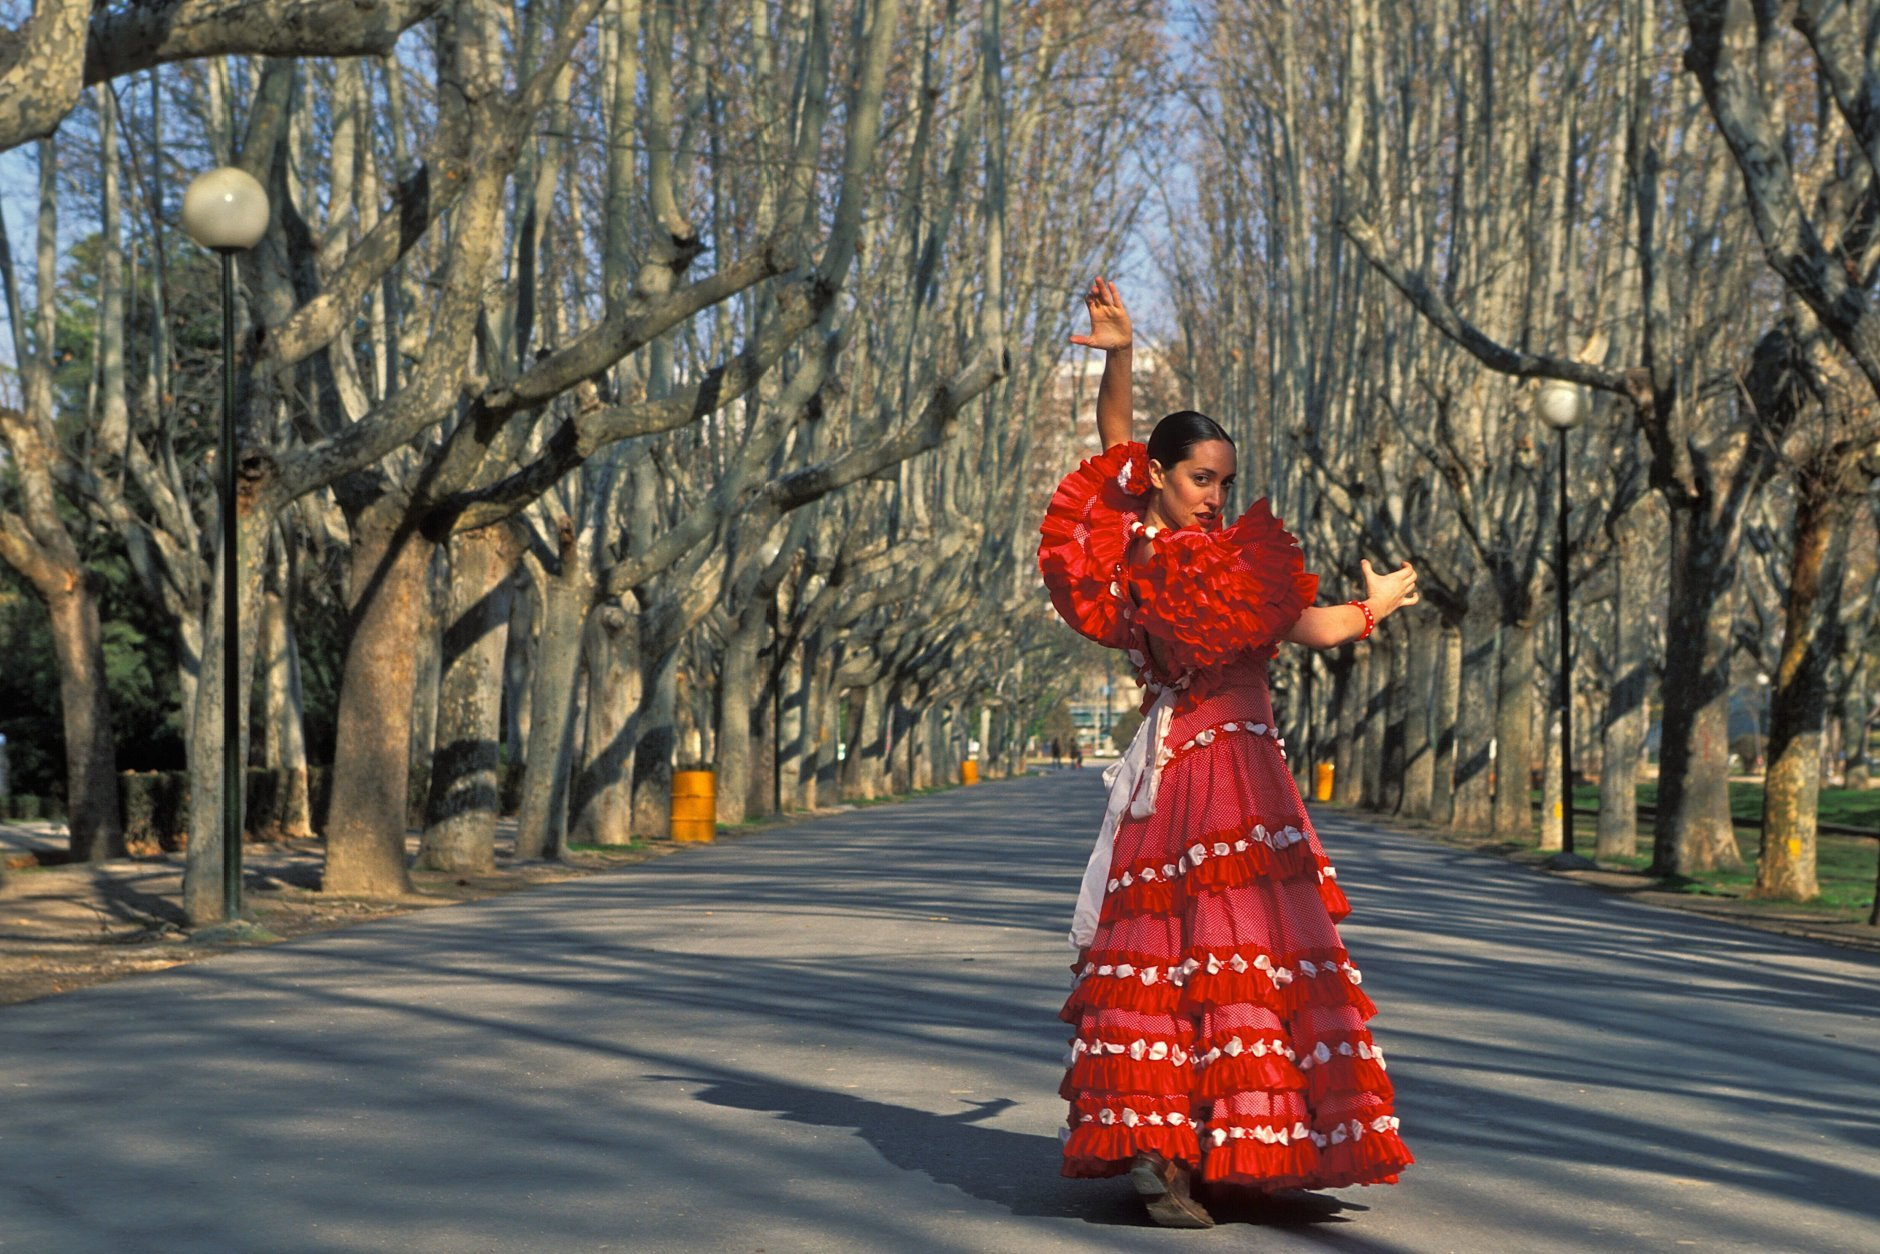 Seville, Spain. Model released photo of a Andalusian woman dress in the typical Sevillanas dress (Kike Calvo via AP Images)